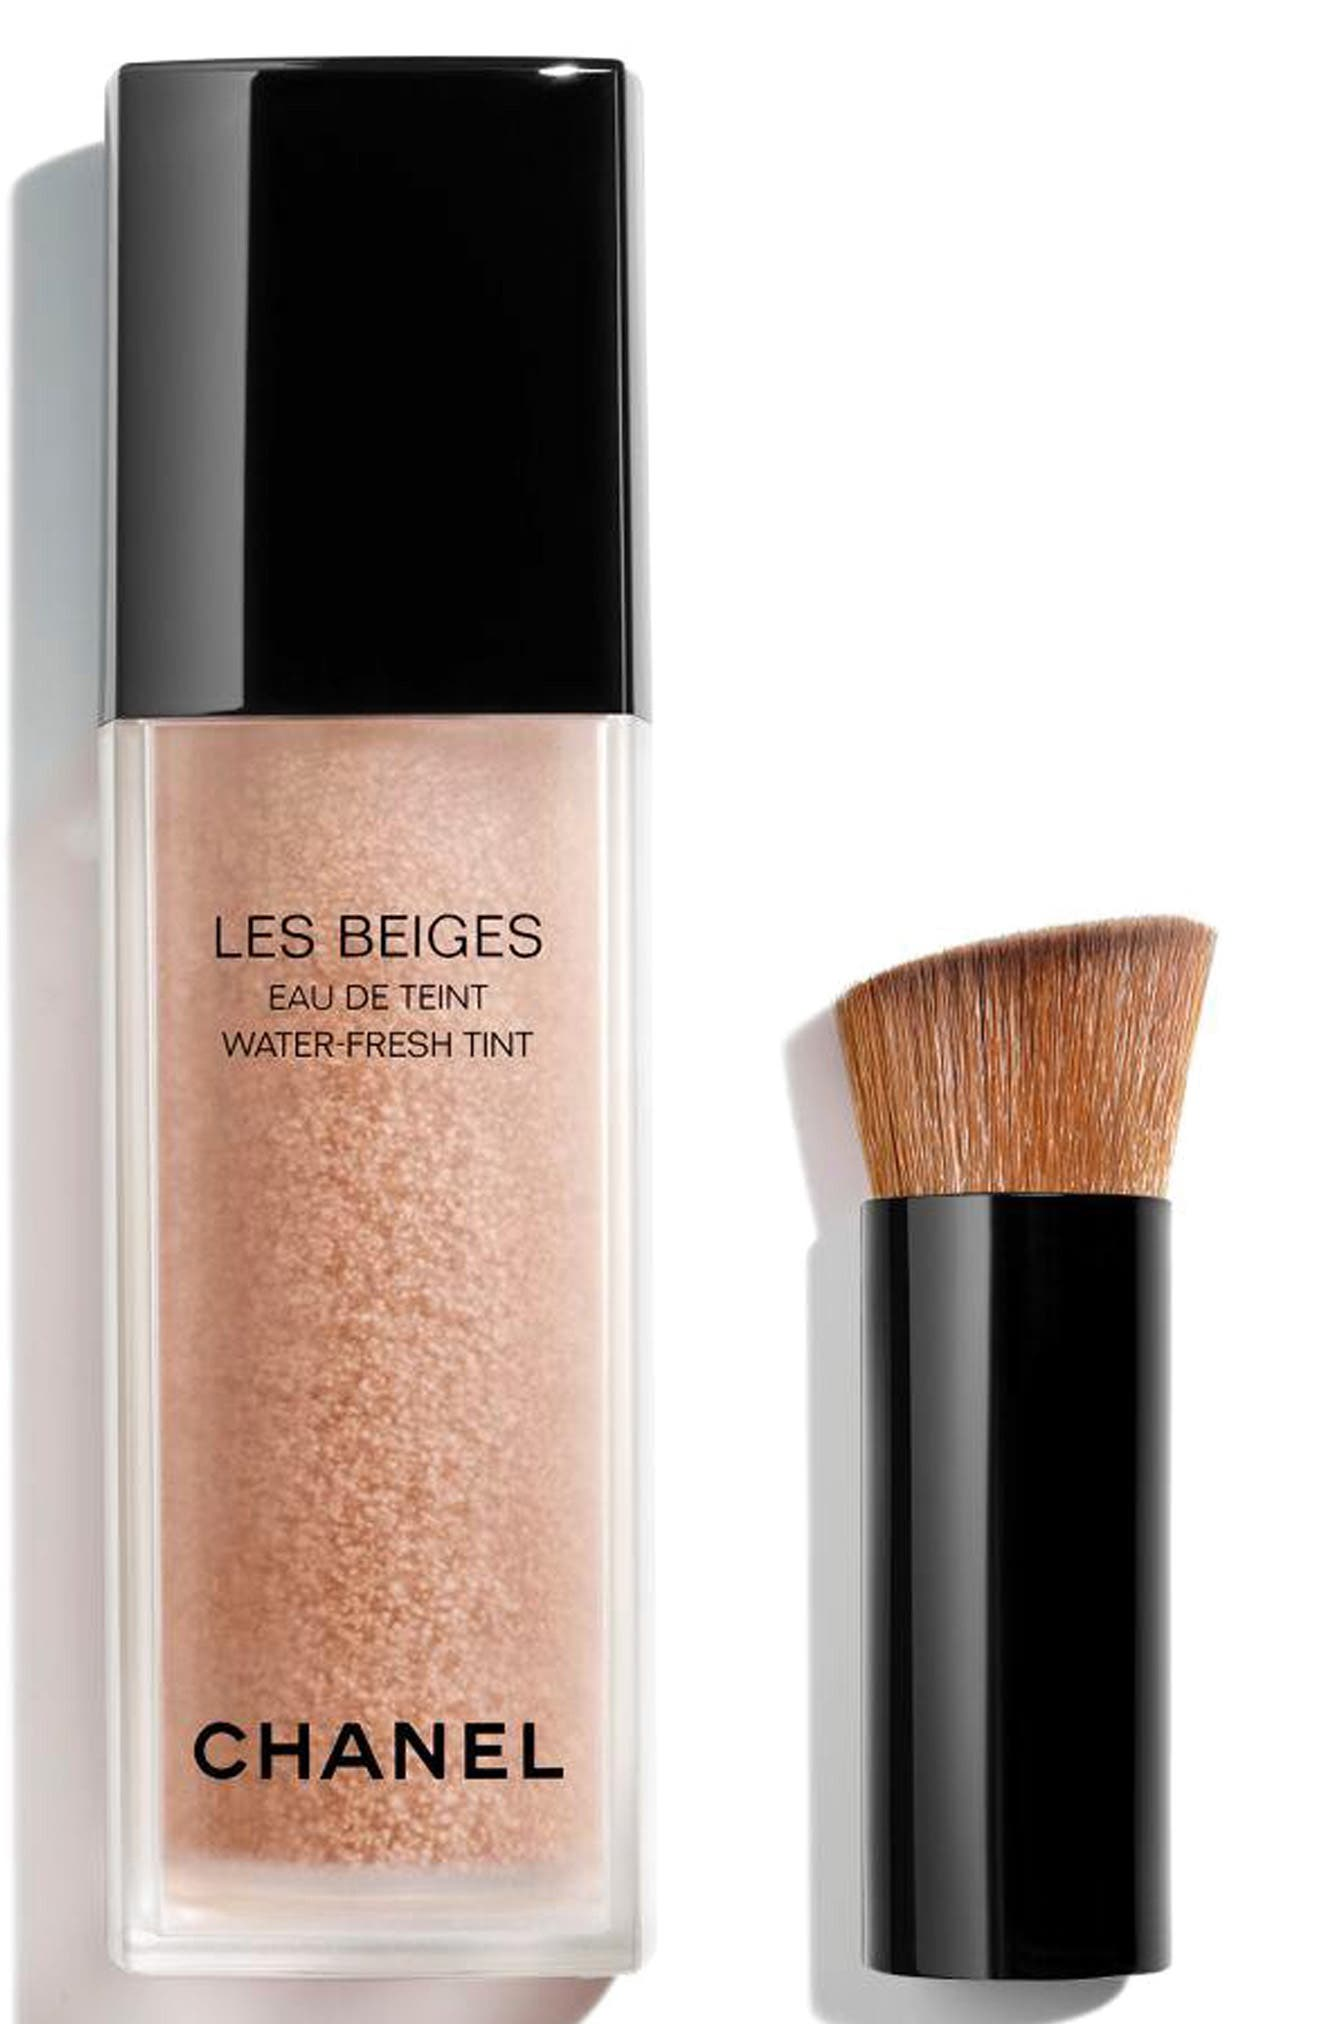 LES BEIGES <br />Water-Fresh Tint, Main, color, 250